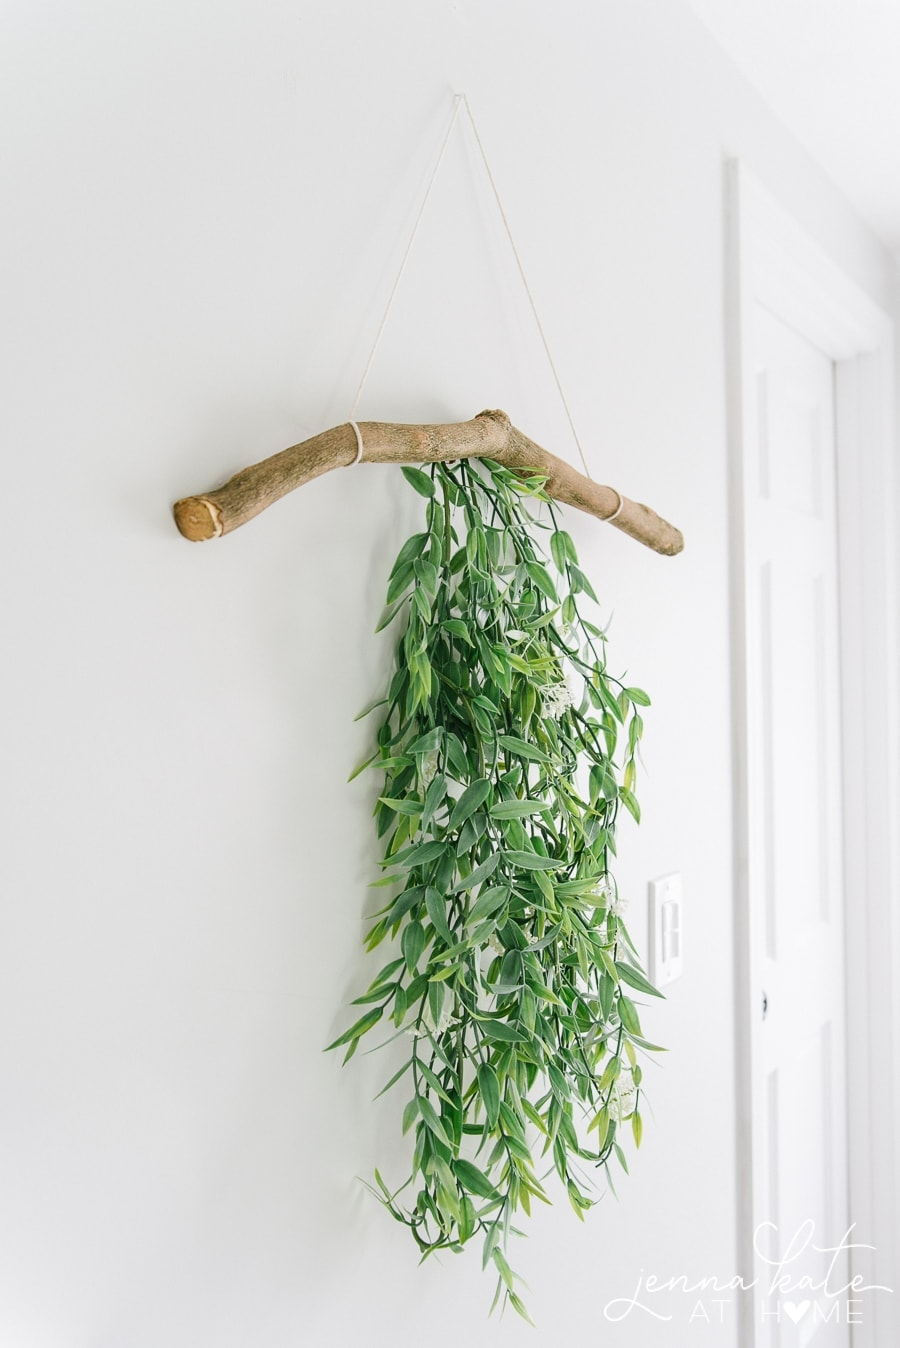 A side view of branch, hanging on wall, with green foliage cascading down